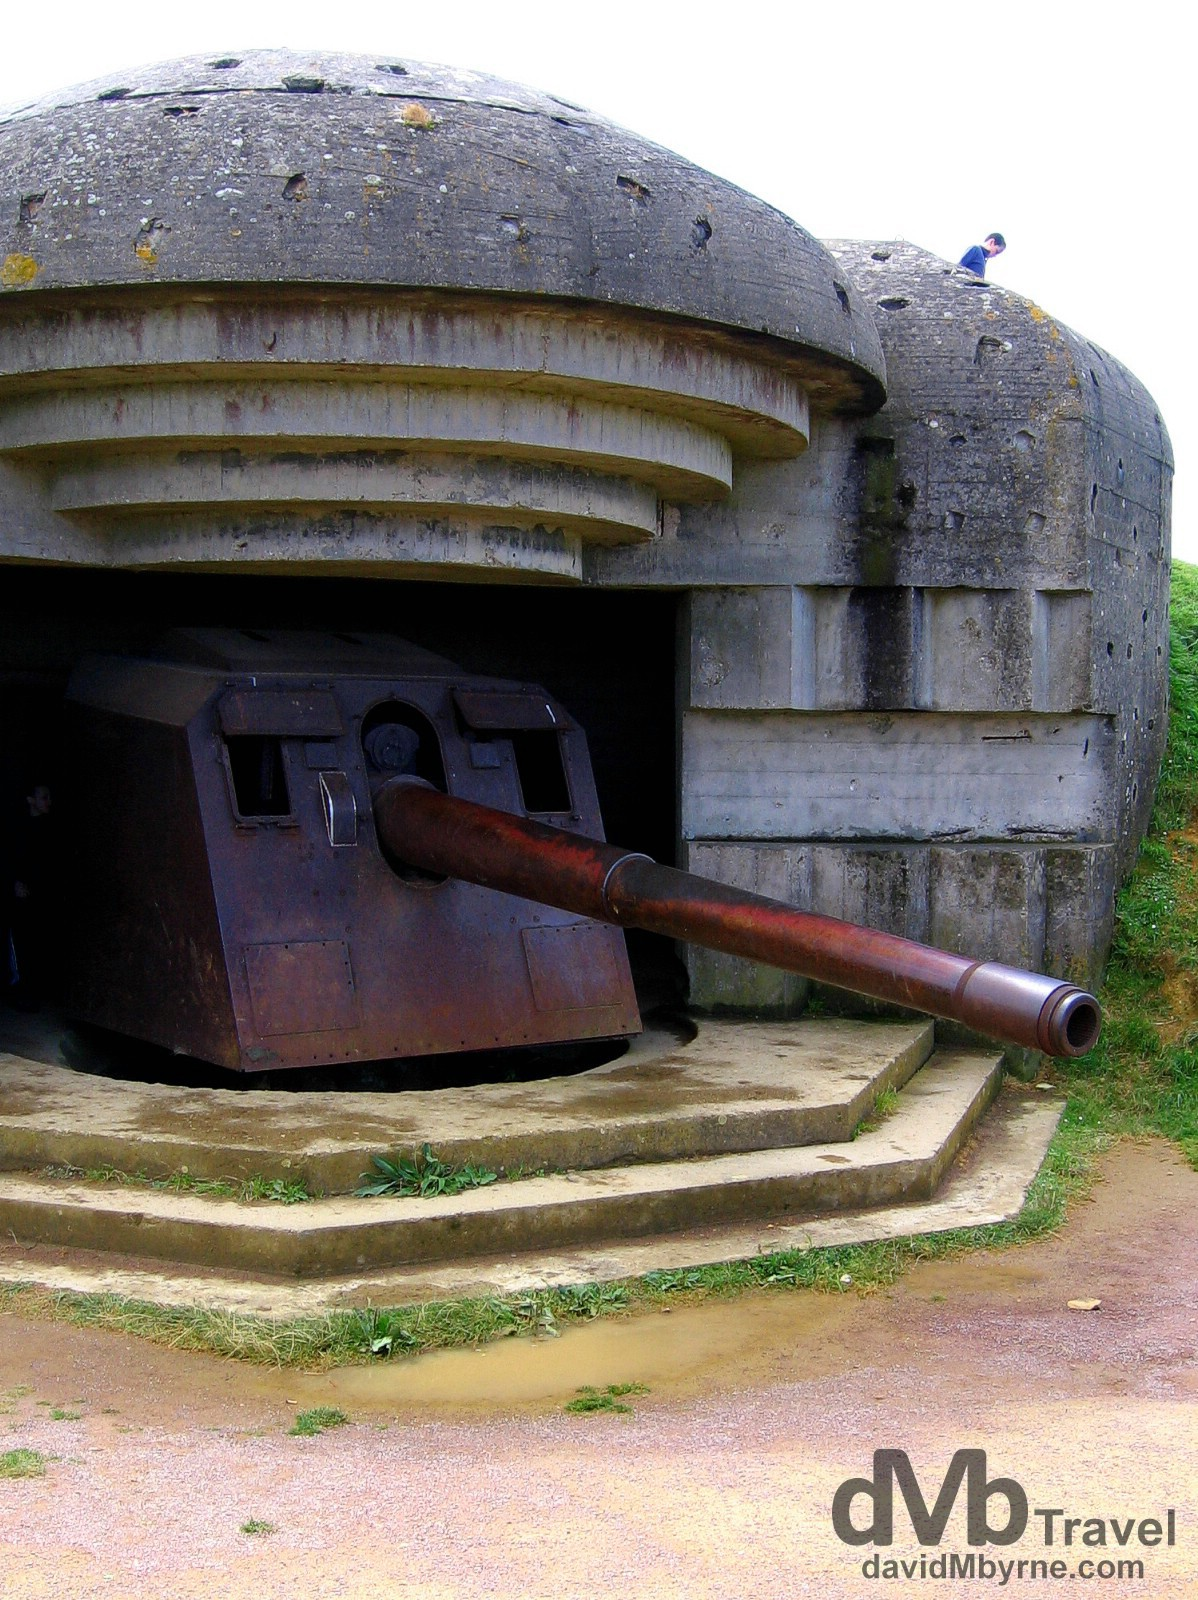 Longues Sur Mer, Normandy, France. August 16th, 2007.